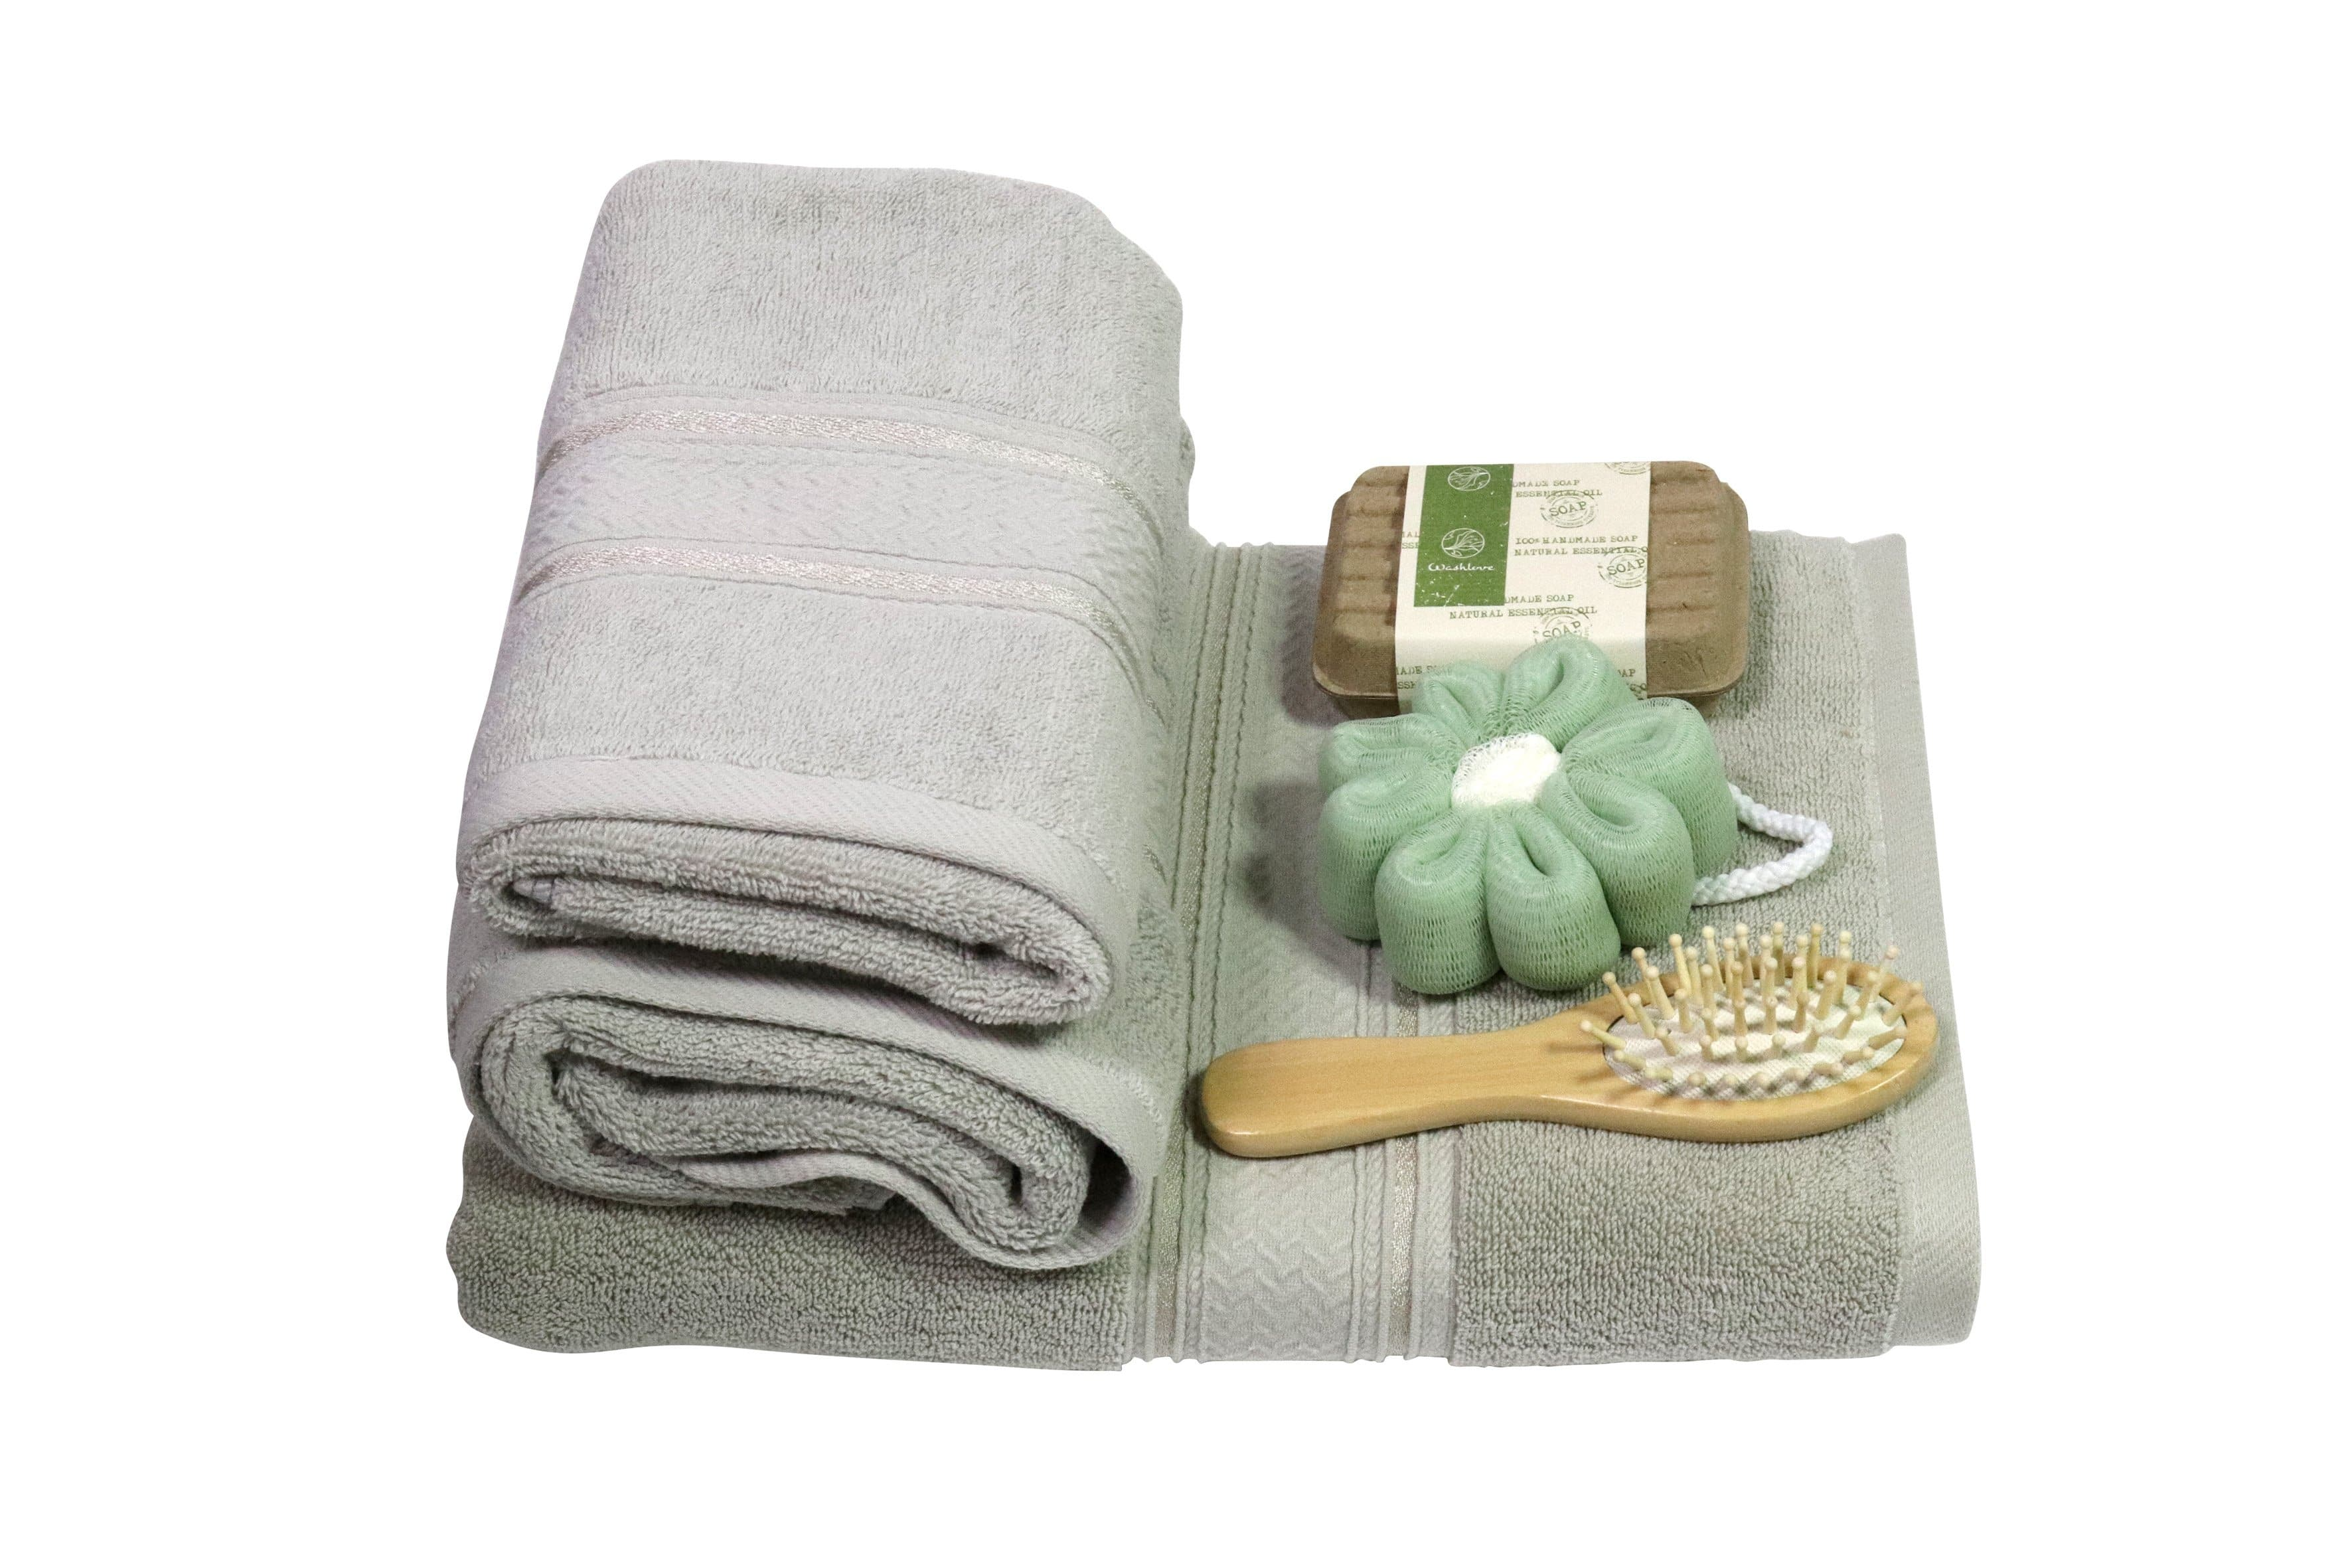 ROSEMARY BATH SET EGYPTIAN COTTON TOWELS